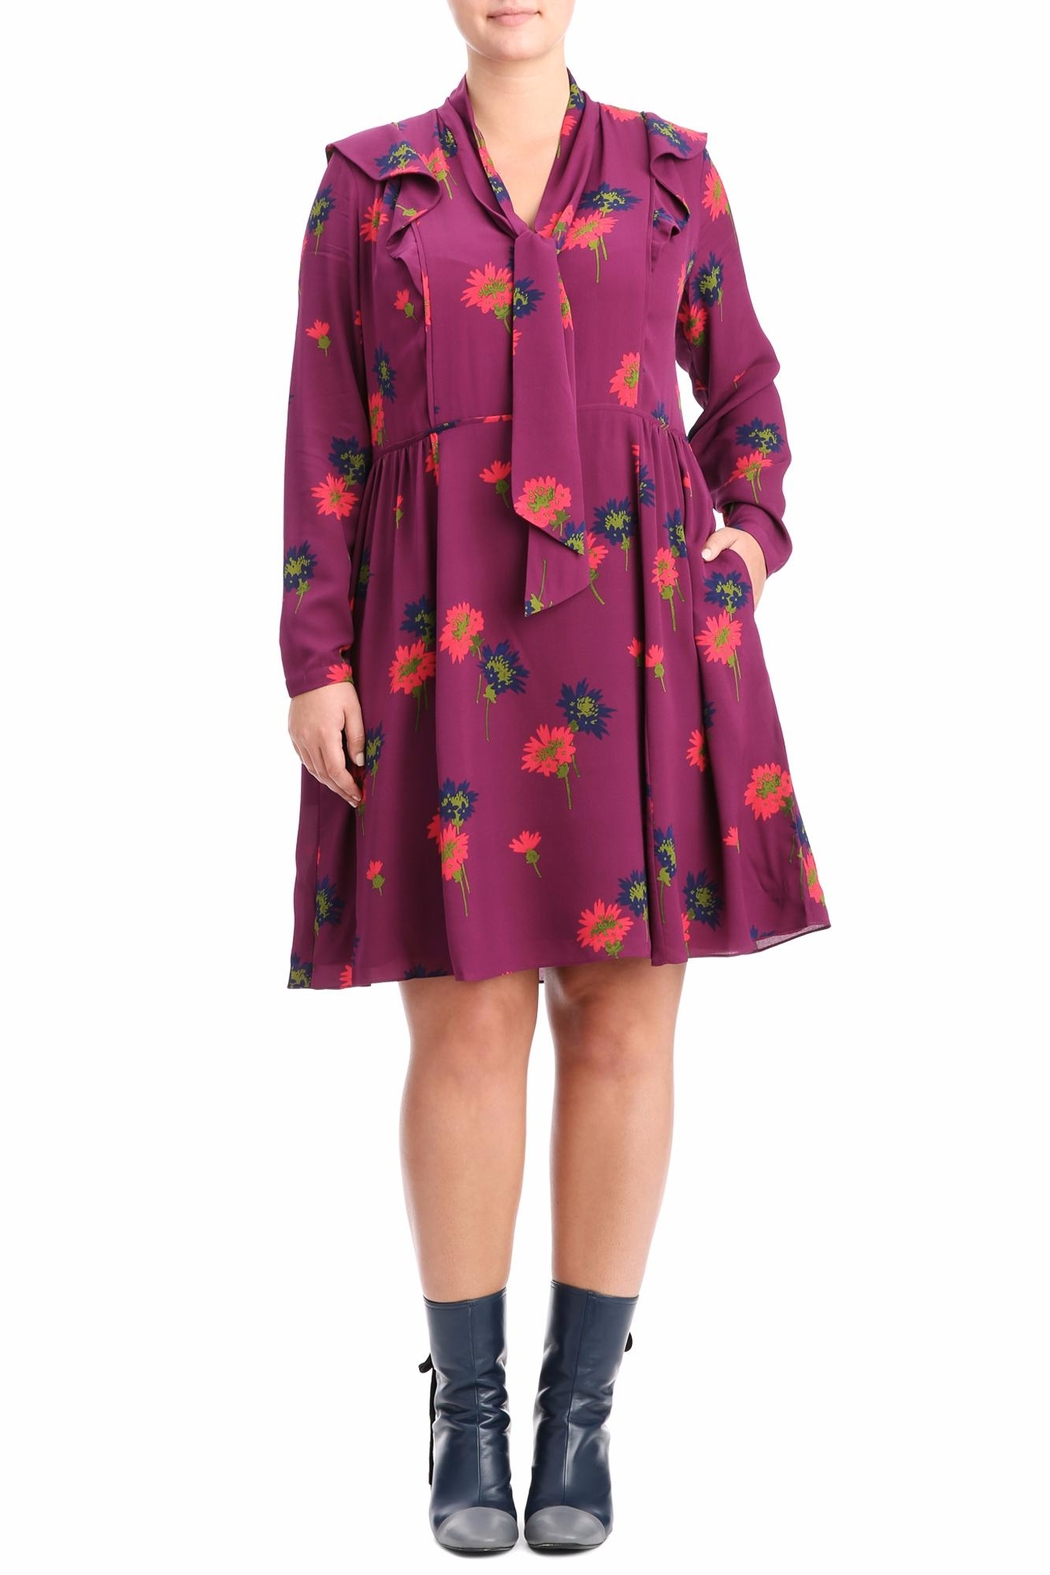 Tanya Taylor Aubree Silk Dress - Main Image